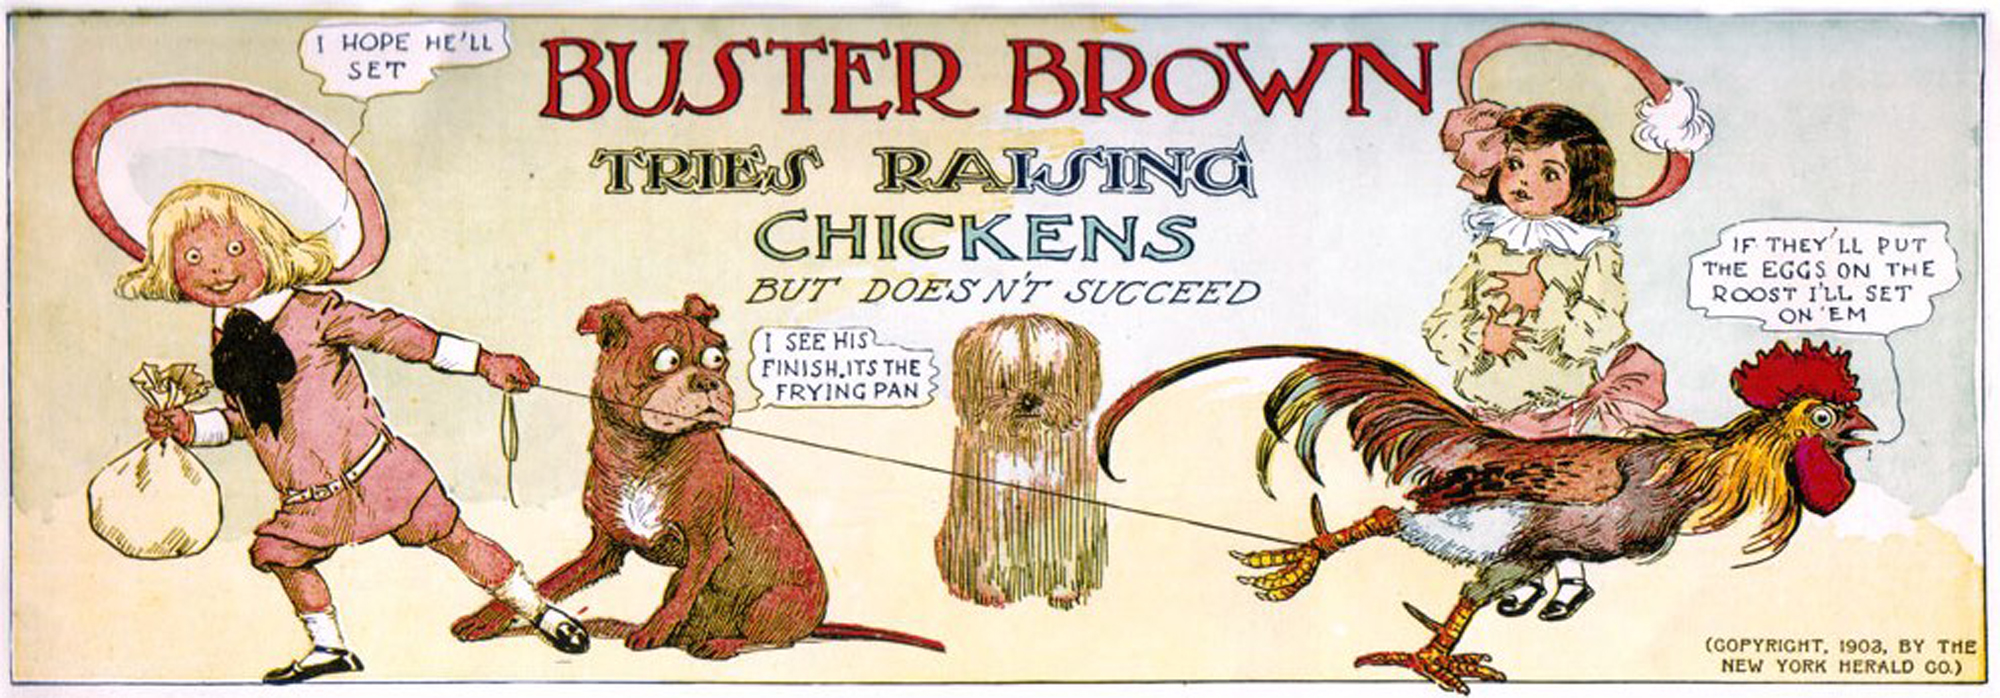 sBuster brown comic.jpg